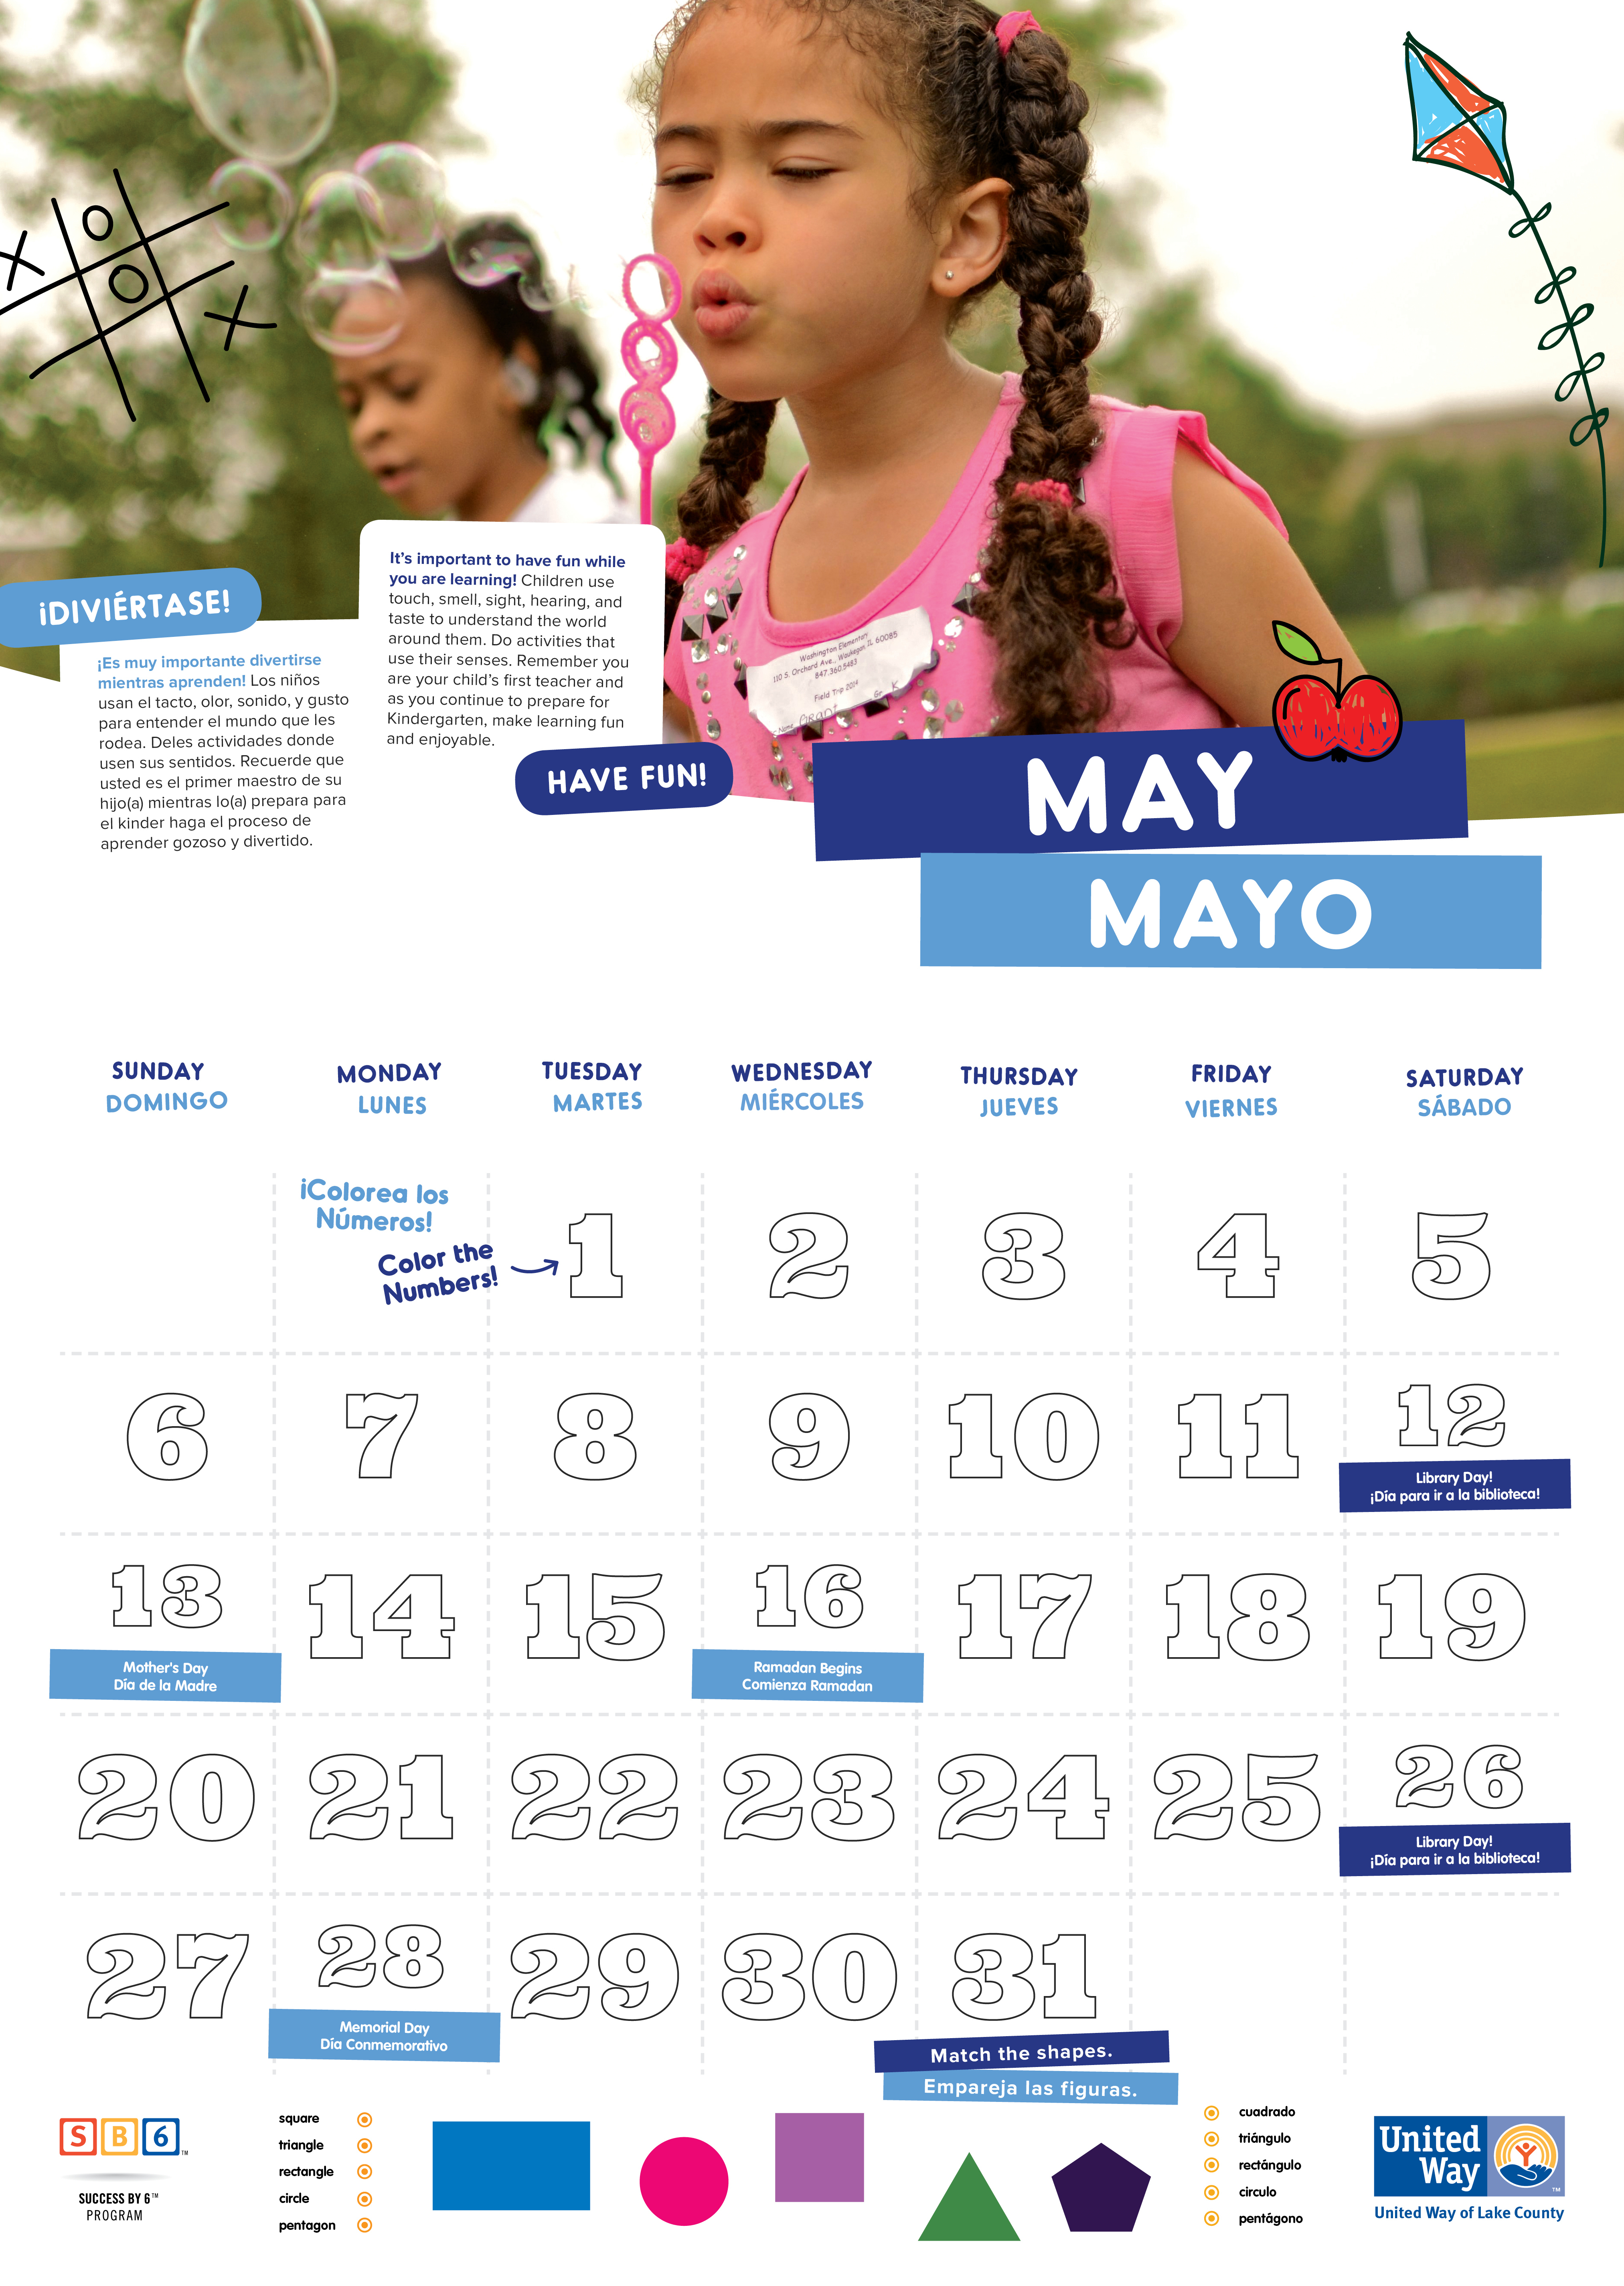 Kindergarten Readiness Calendar : United way of lake county kindergarten readiness